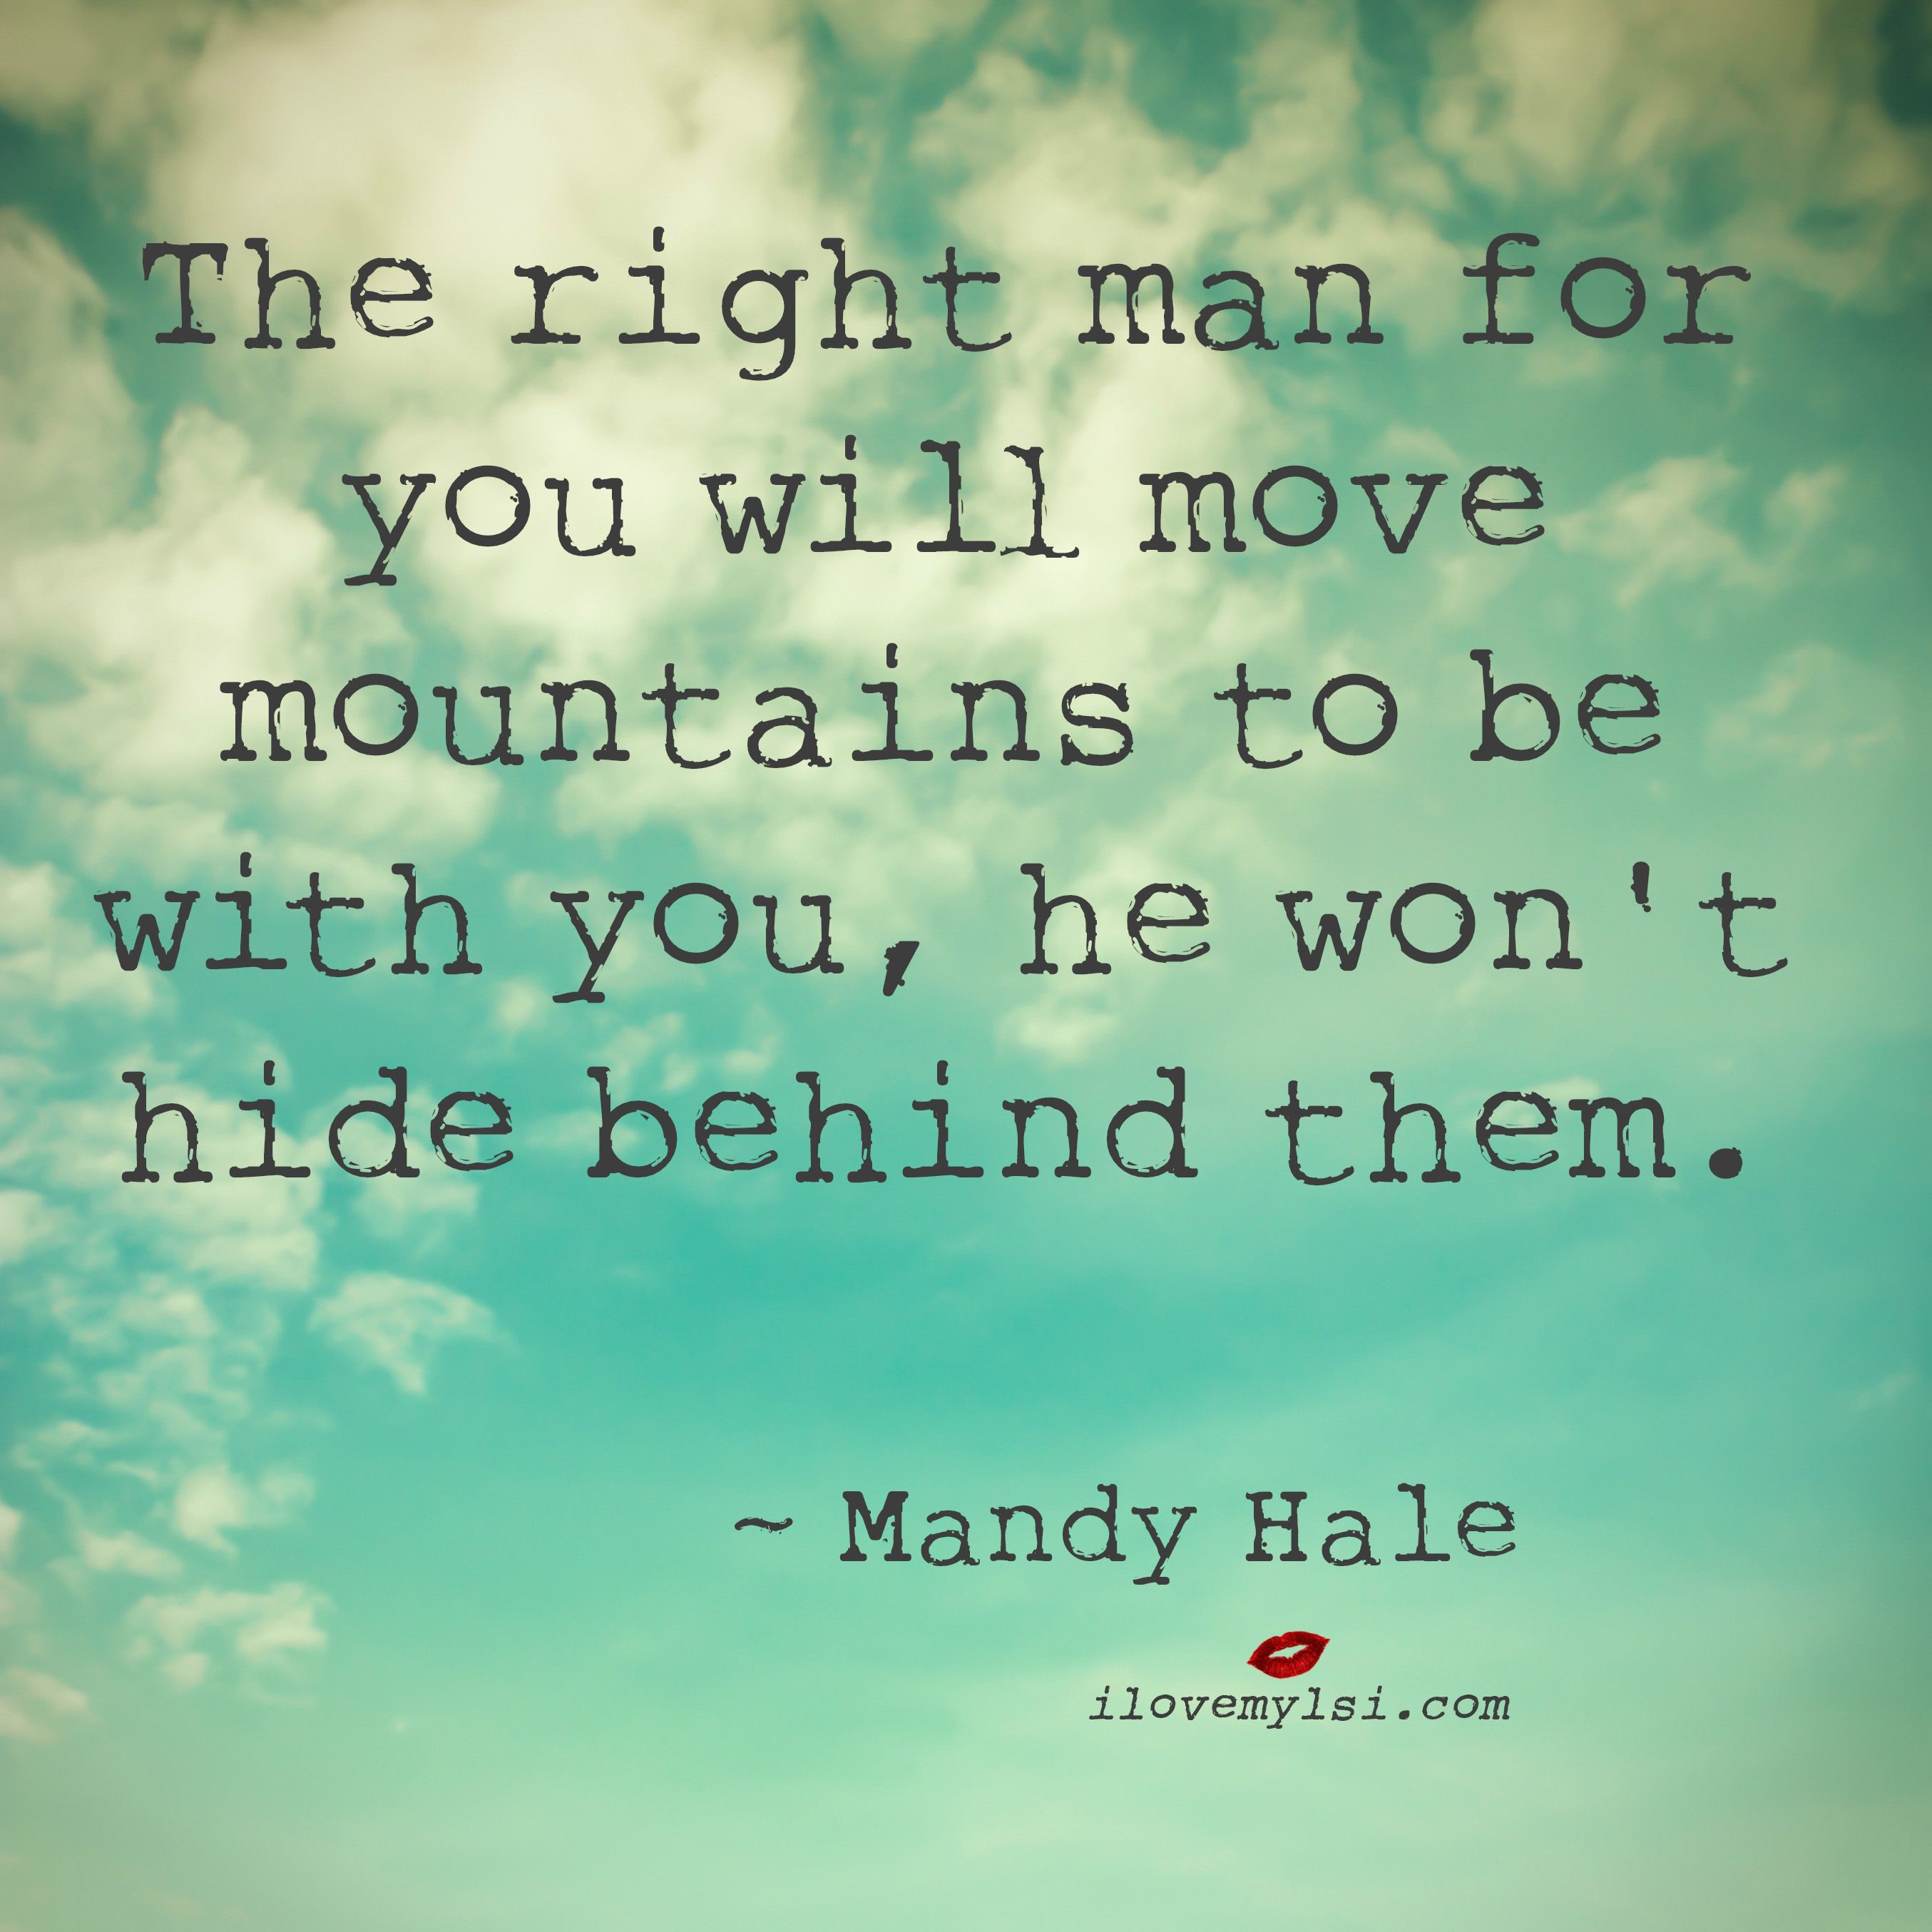 The right man for you will move mountains